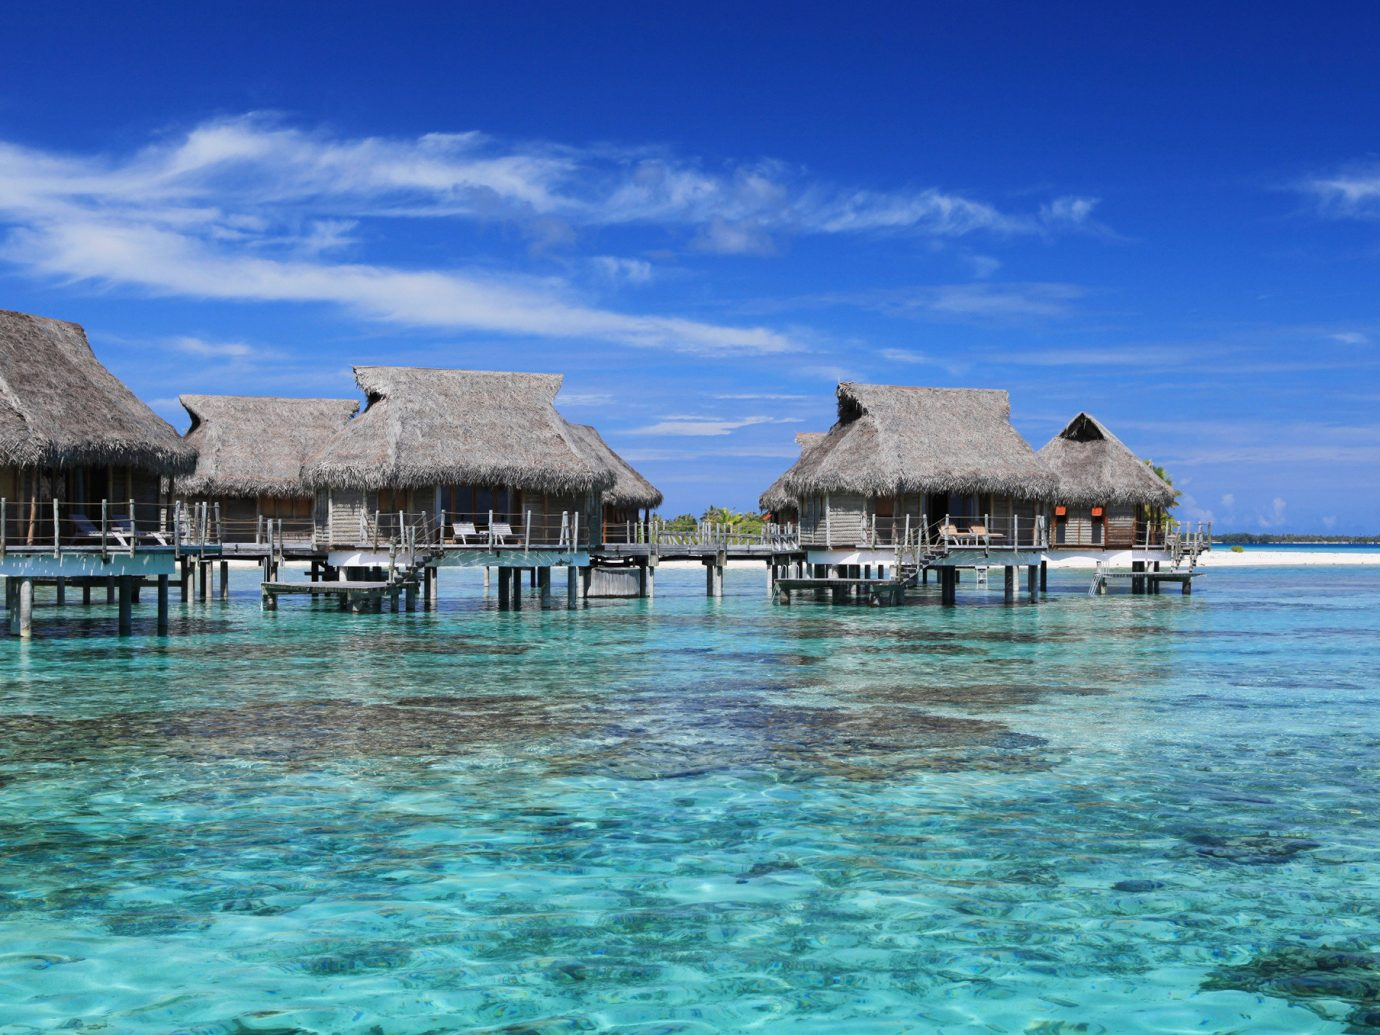 All-Inclusive Resorts Boutique Hotels Hotels Romance outdoor sky water umbrella Sea scene geographical feature landform chair body of water Ocean Beach vacation blue caribbean shore Coast Lagoon Island Resort bay Pool islet swimming pool cape lawn tropics cove swimming shade day sandy